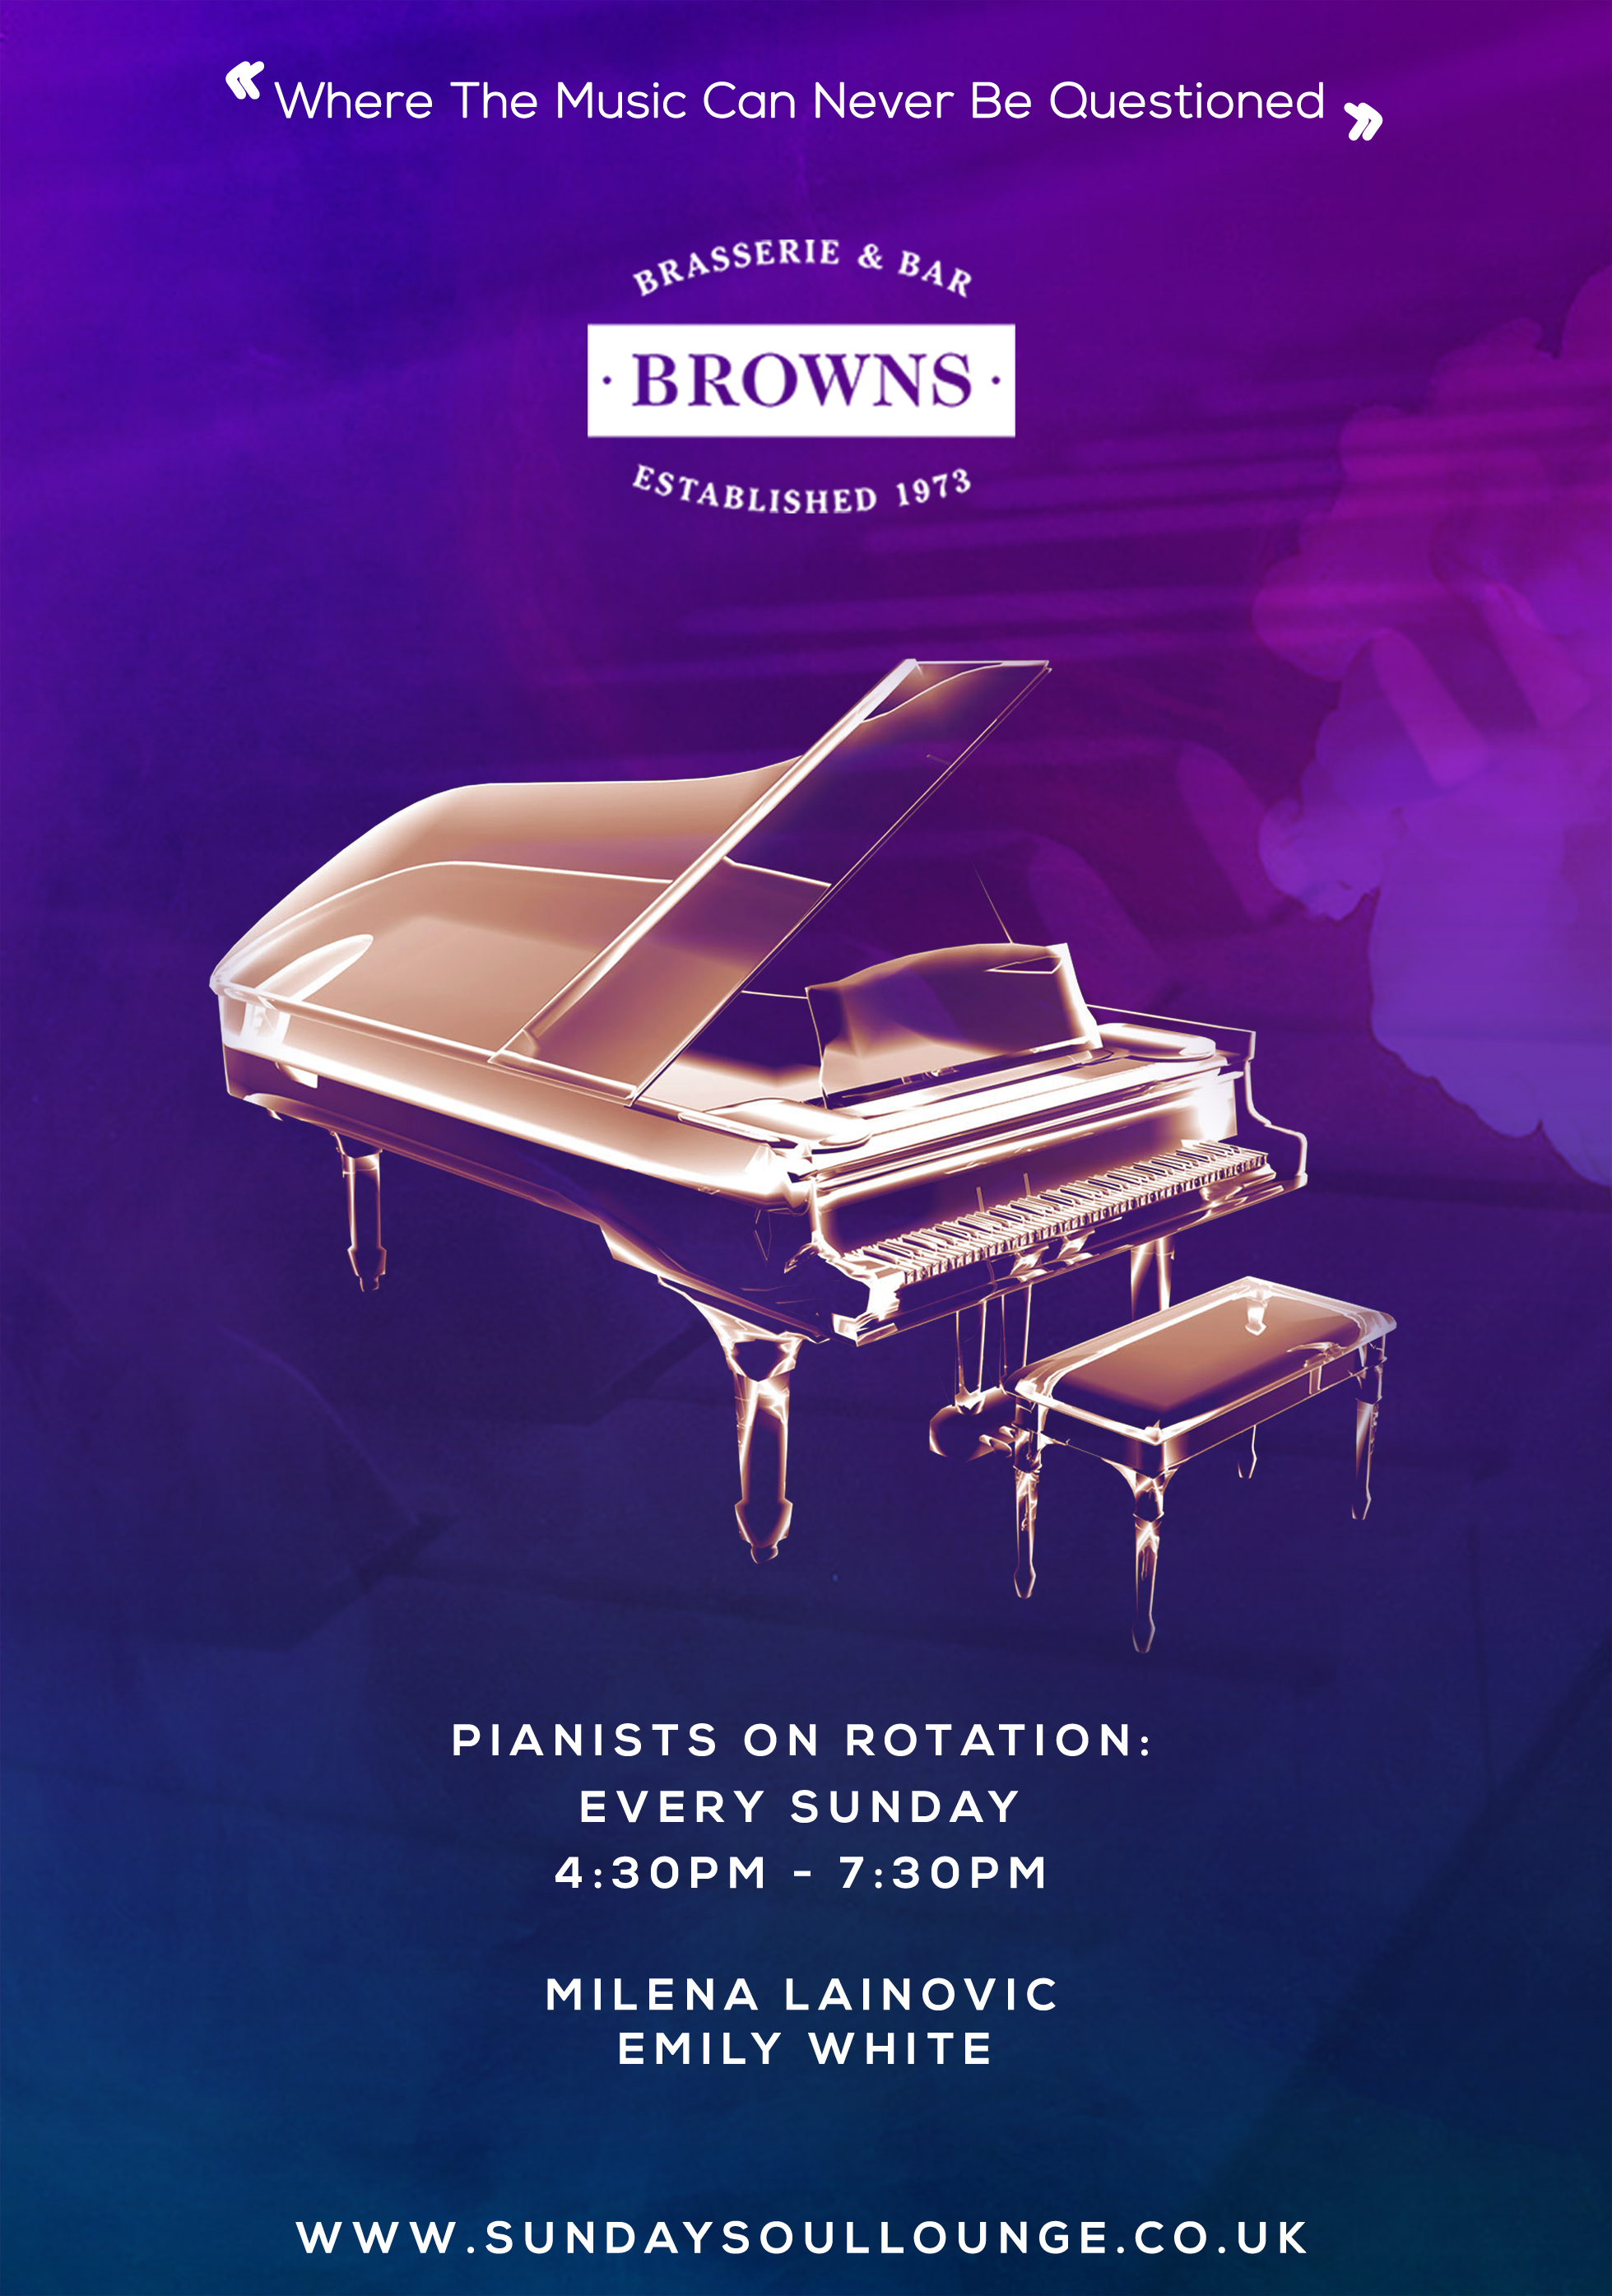 Emily White playing at Browns, Bluewater   Sunday SouLounge